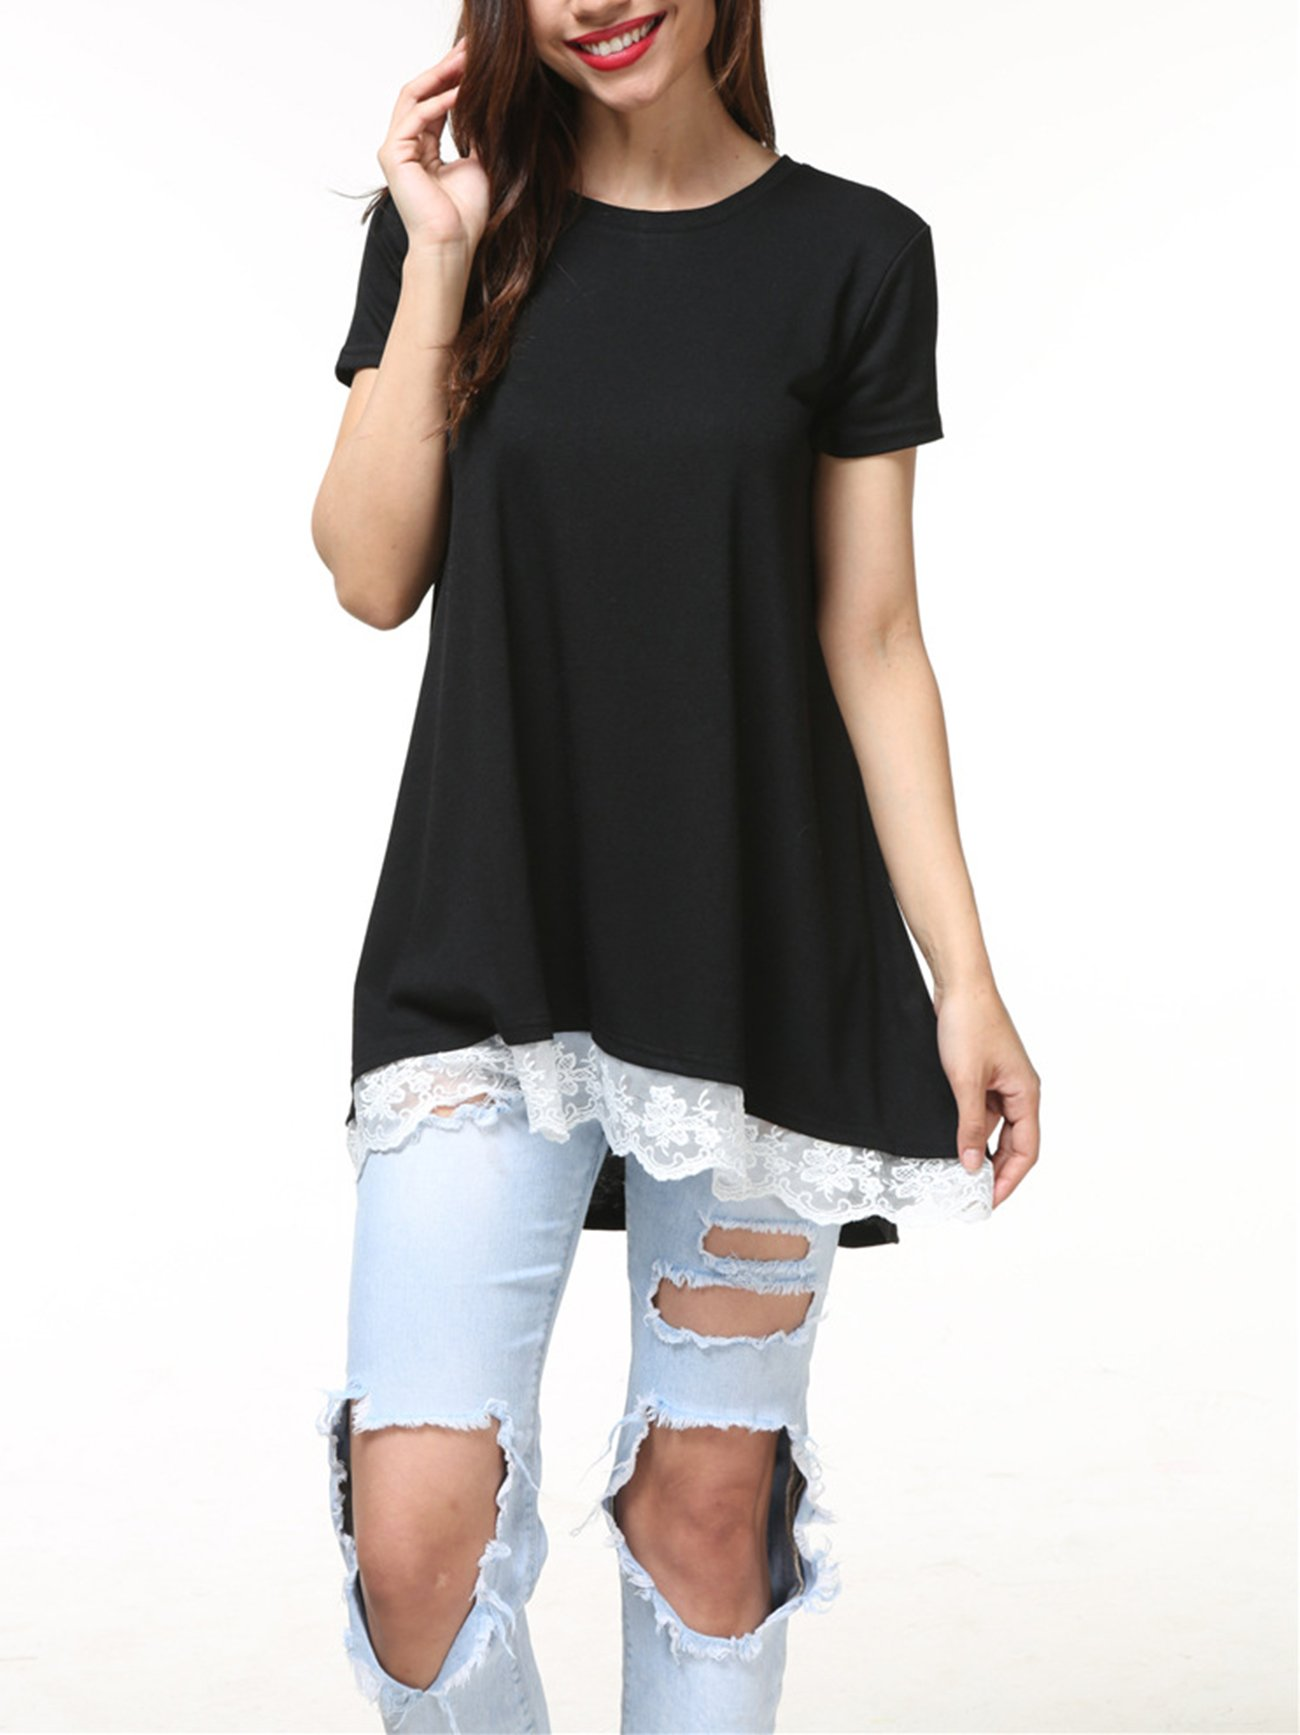 VAYAGER Short Sleeve T Shirts for Womans Round Neck Front Hem Lace Design Top Black L